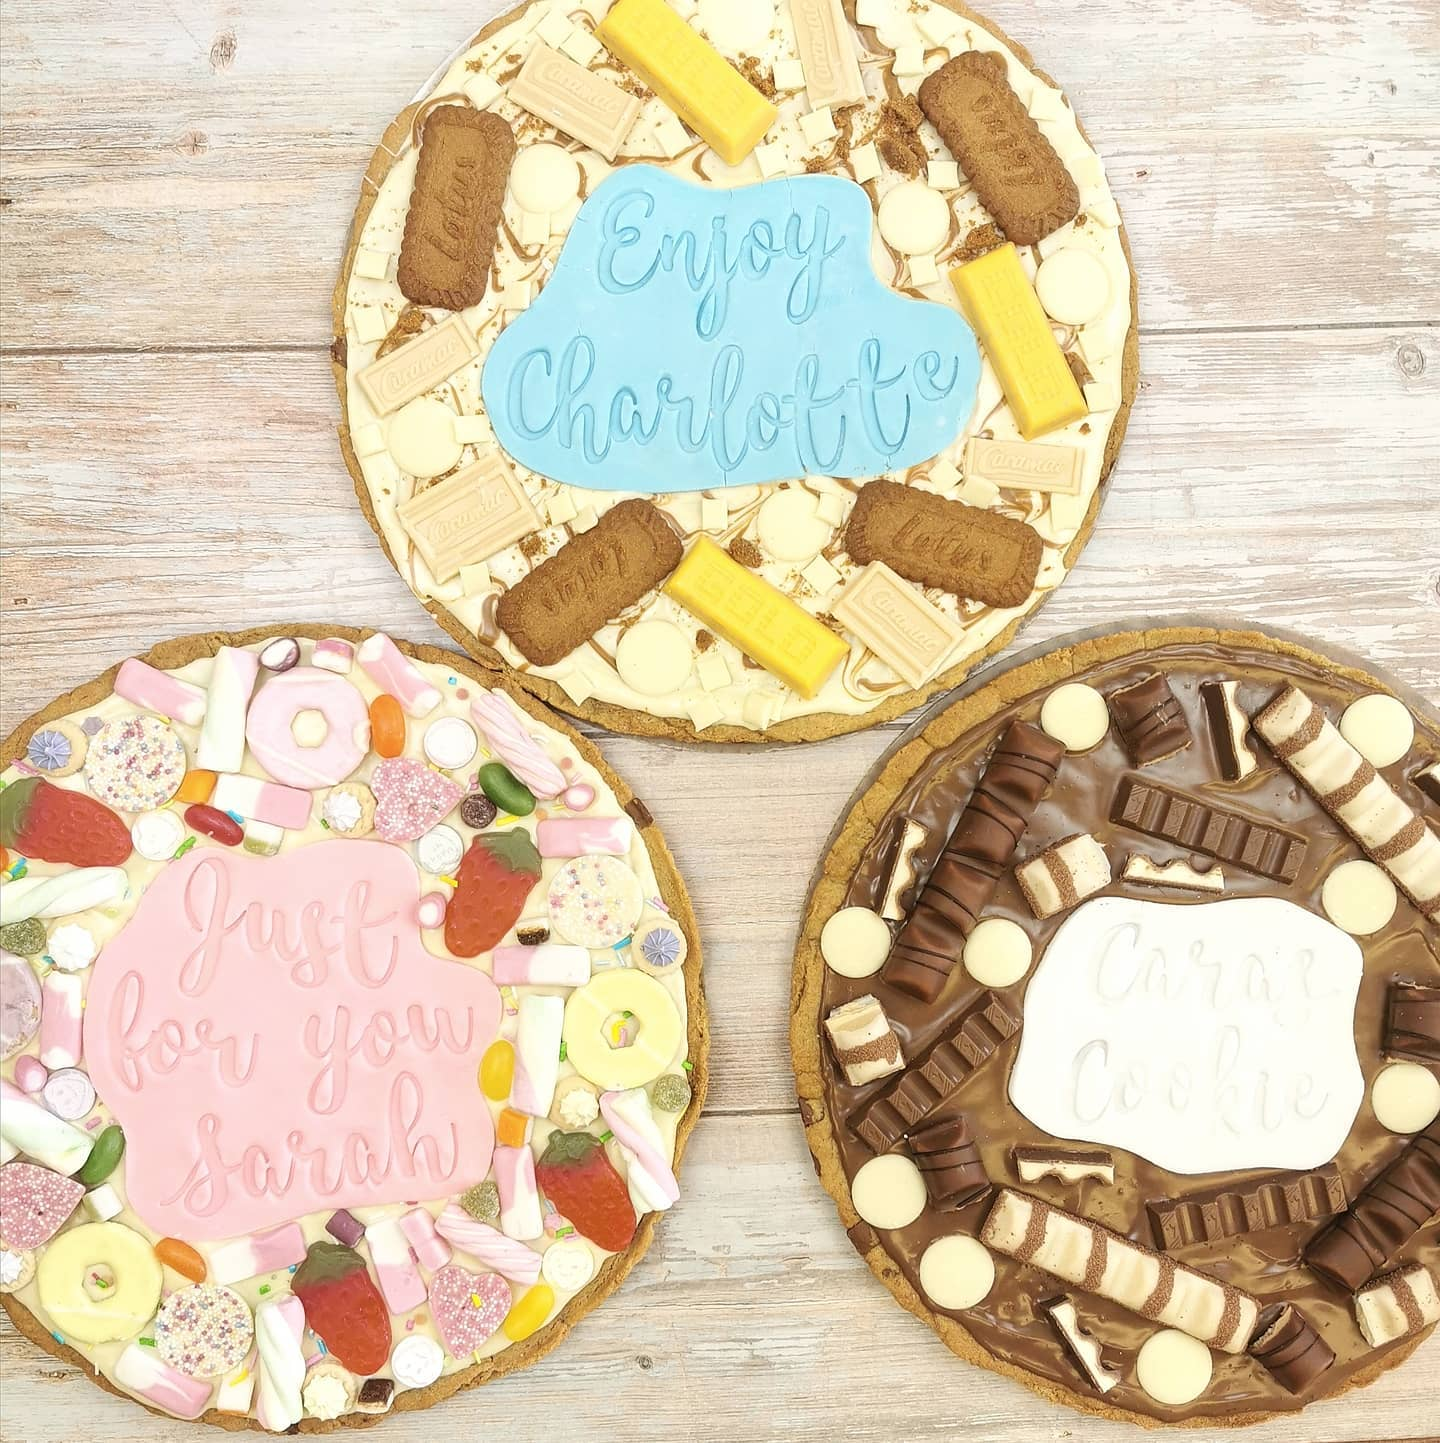 Personalised Fully Loaded Cookie Gallery Image